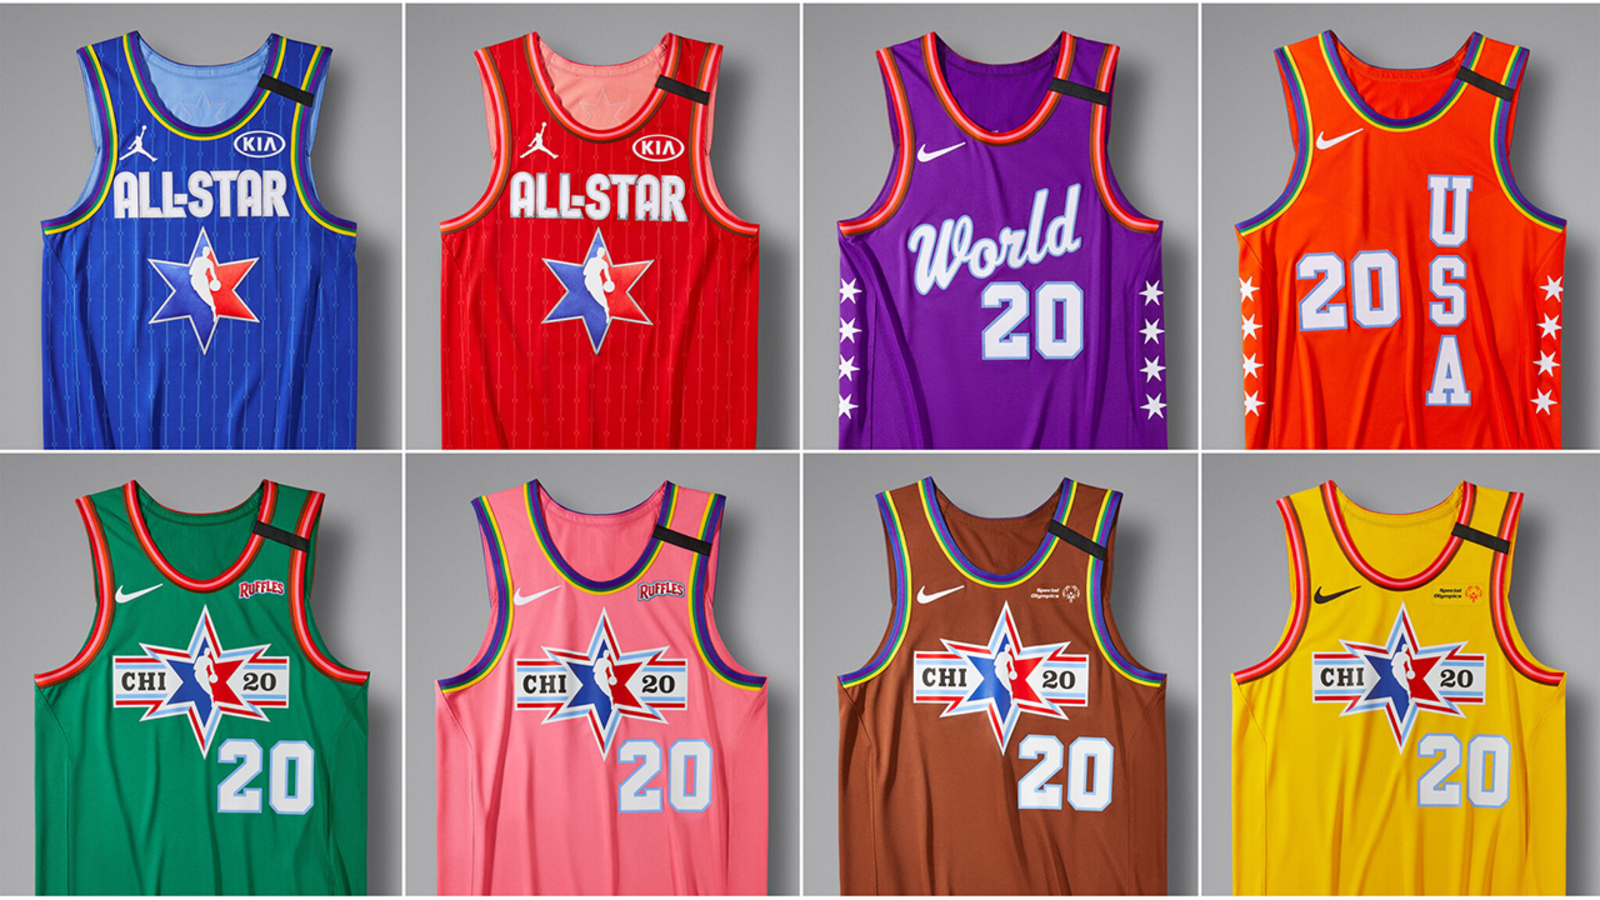 2020 NBA All Star Game uniforms pay tribute to Chicago CTA train 1600x900